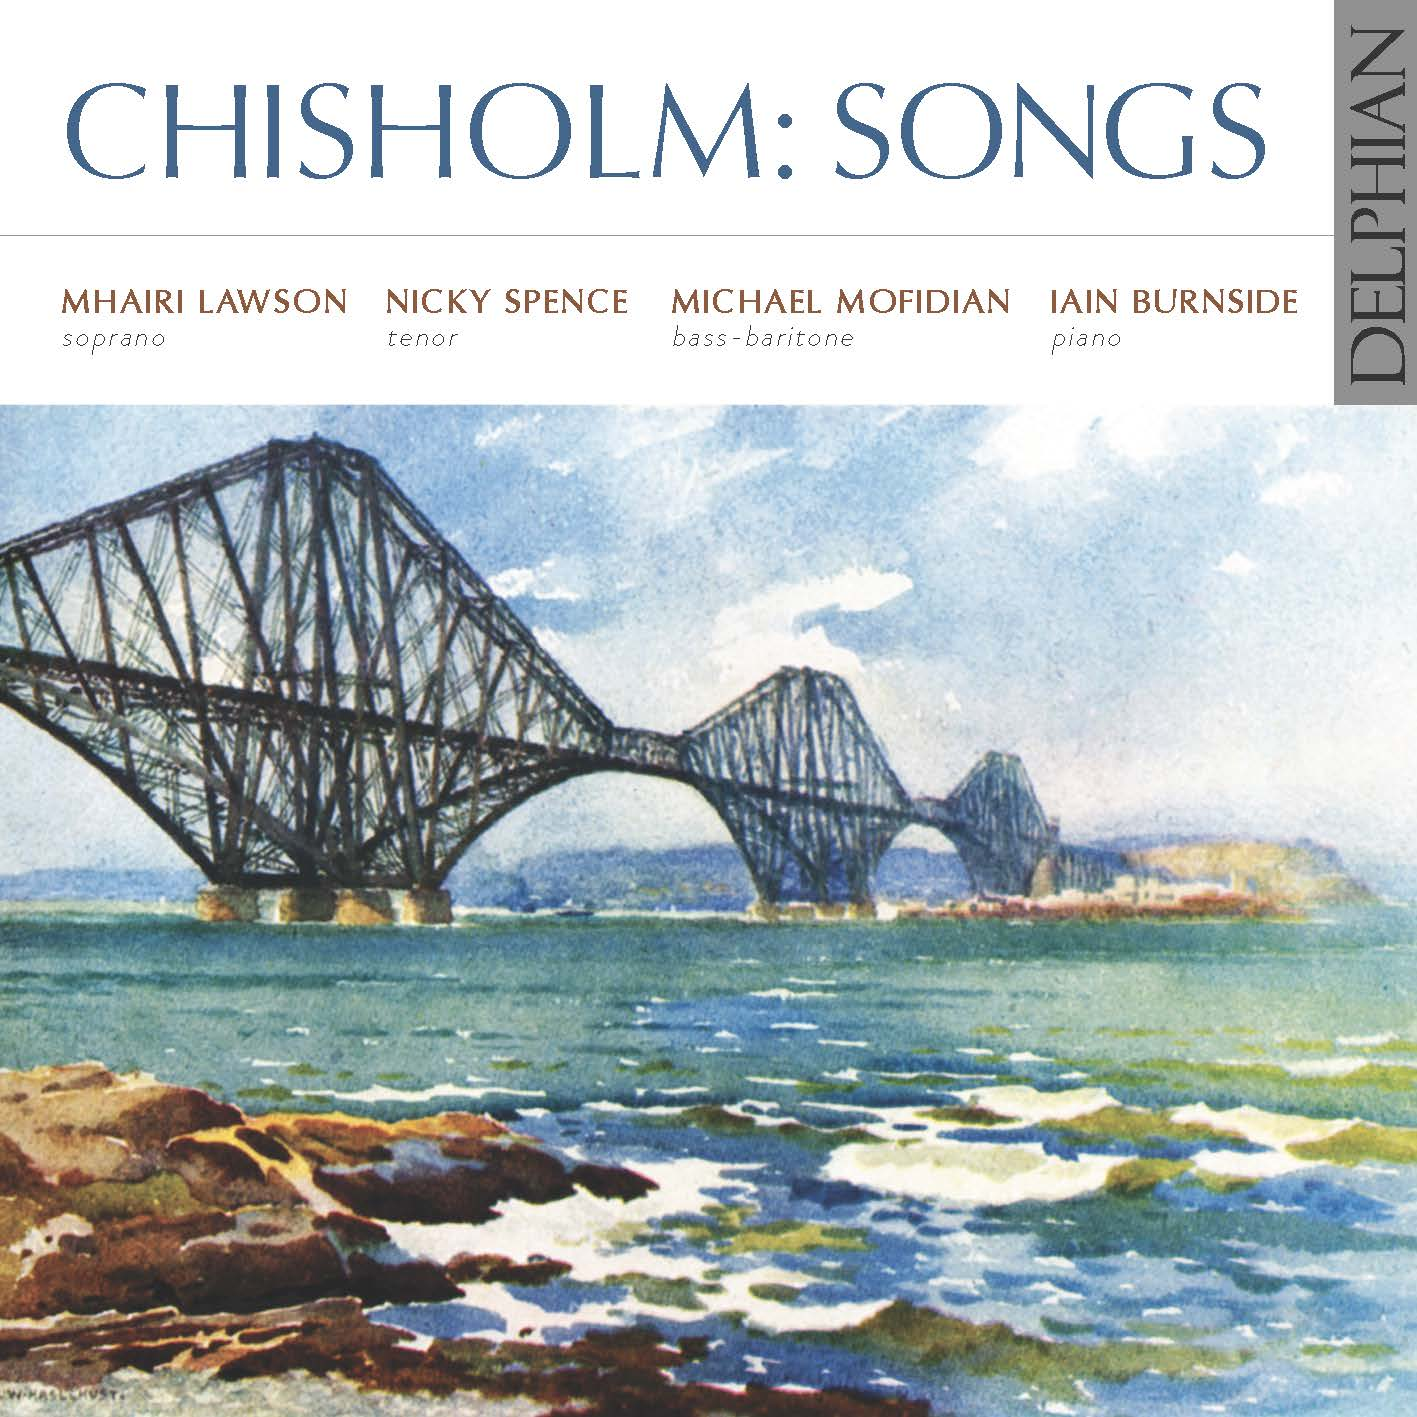 Erik Chisholm: Songs CD Delphian Records